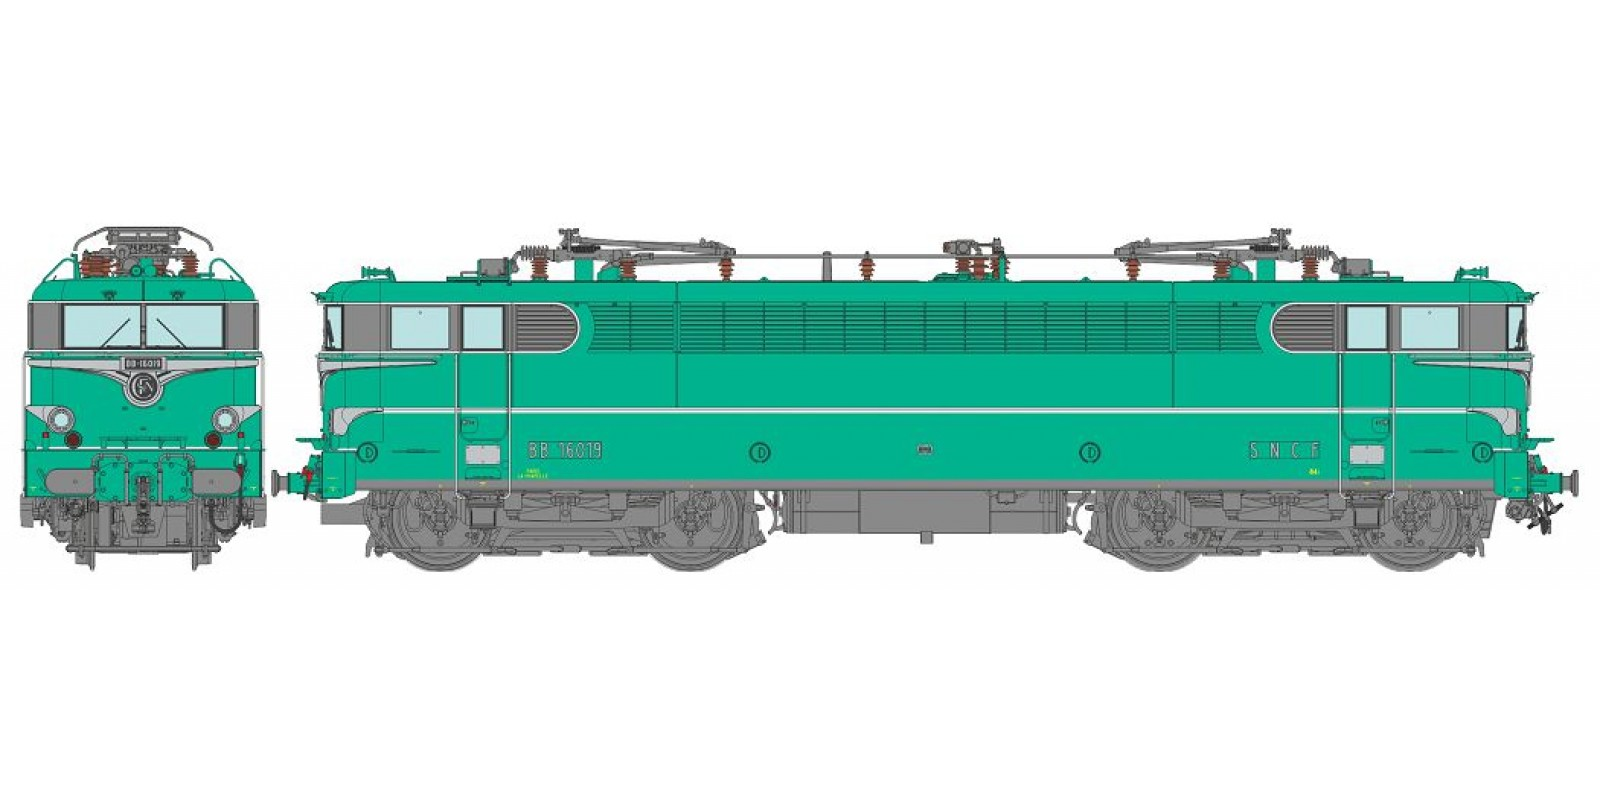 REMB142S BB 16019 Green with embellishers - LA CHAPELLE - DCC Sound Functional Pantos